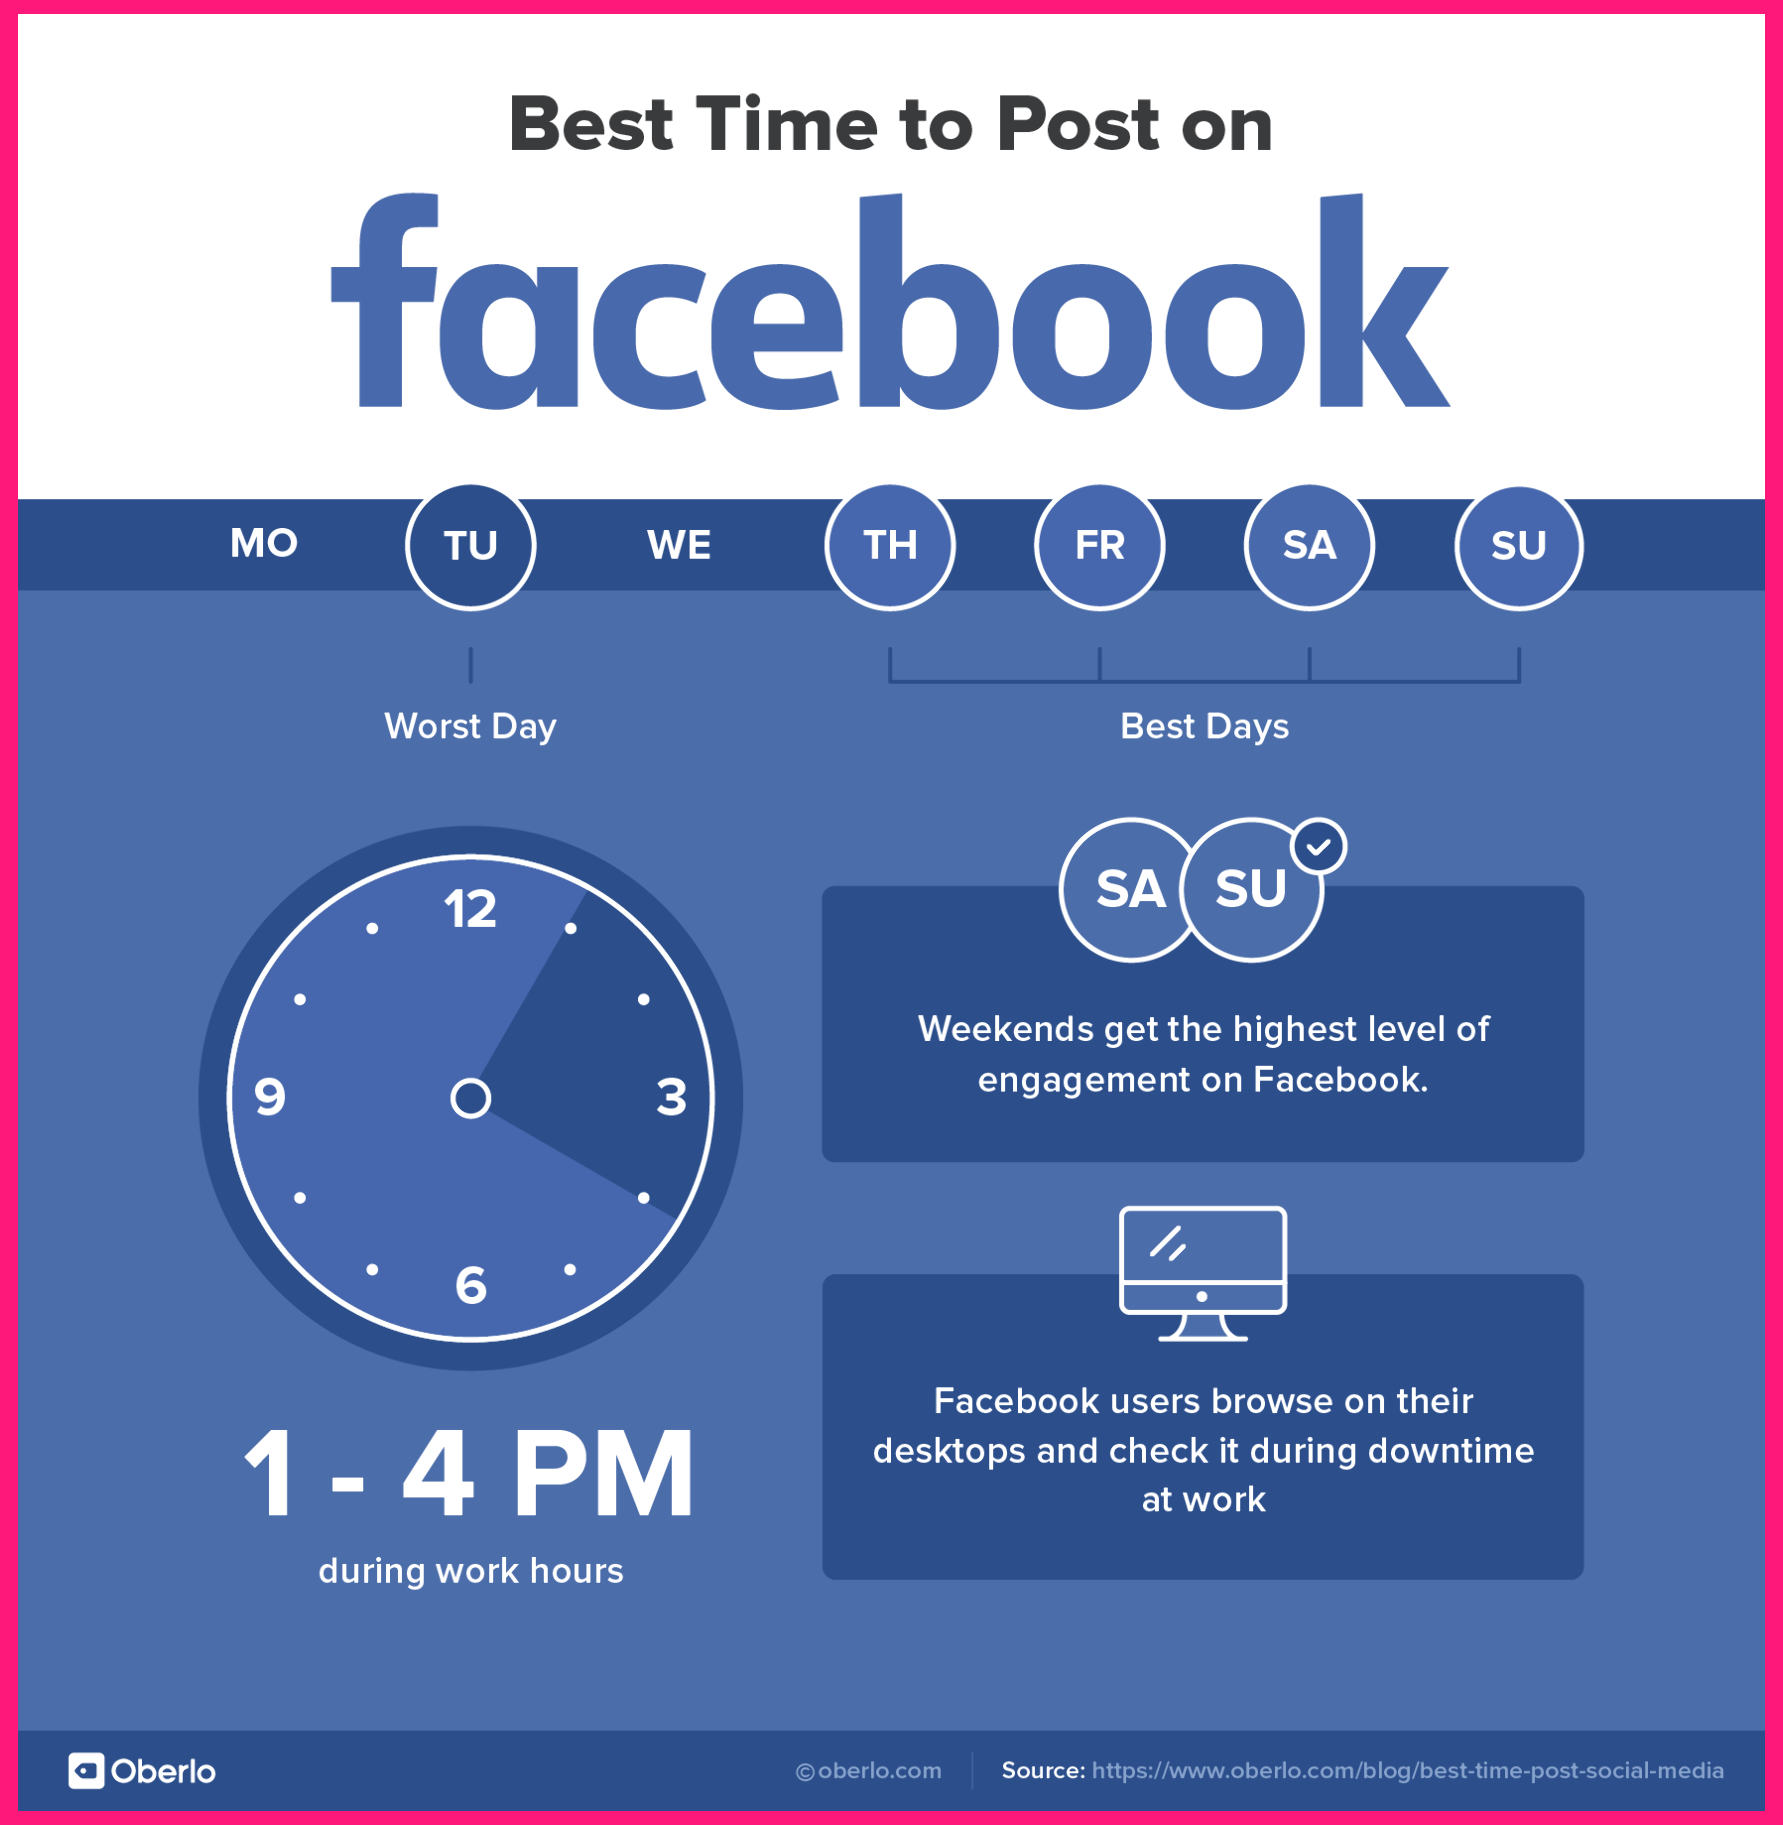 Best Time To Post On Instagram Facebook Linkedin And Twitter In 2020 Social Media Brandi In 2020 Facebook Marketing Best Time To Post How To Use Facebook